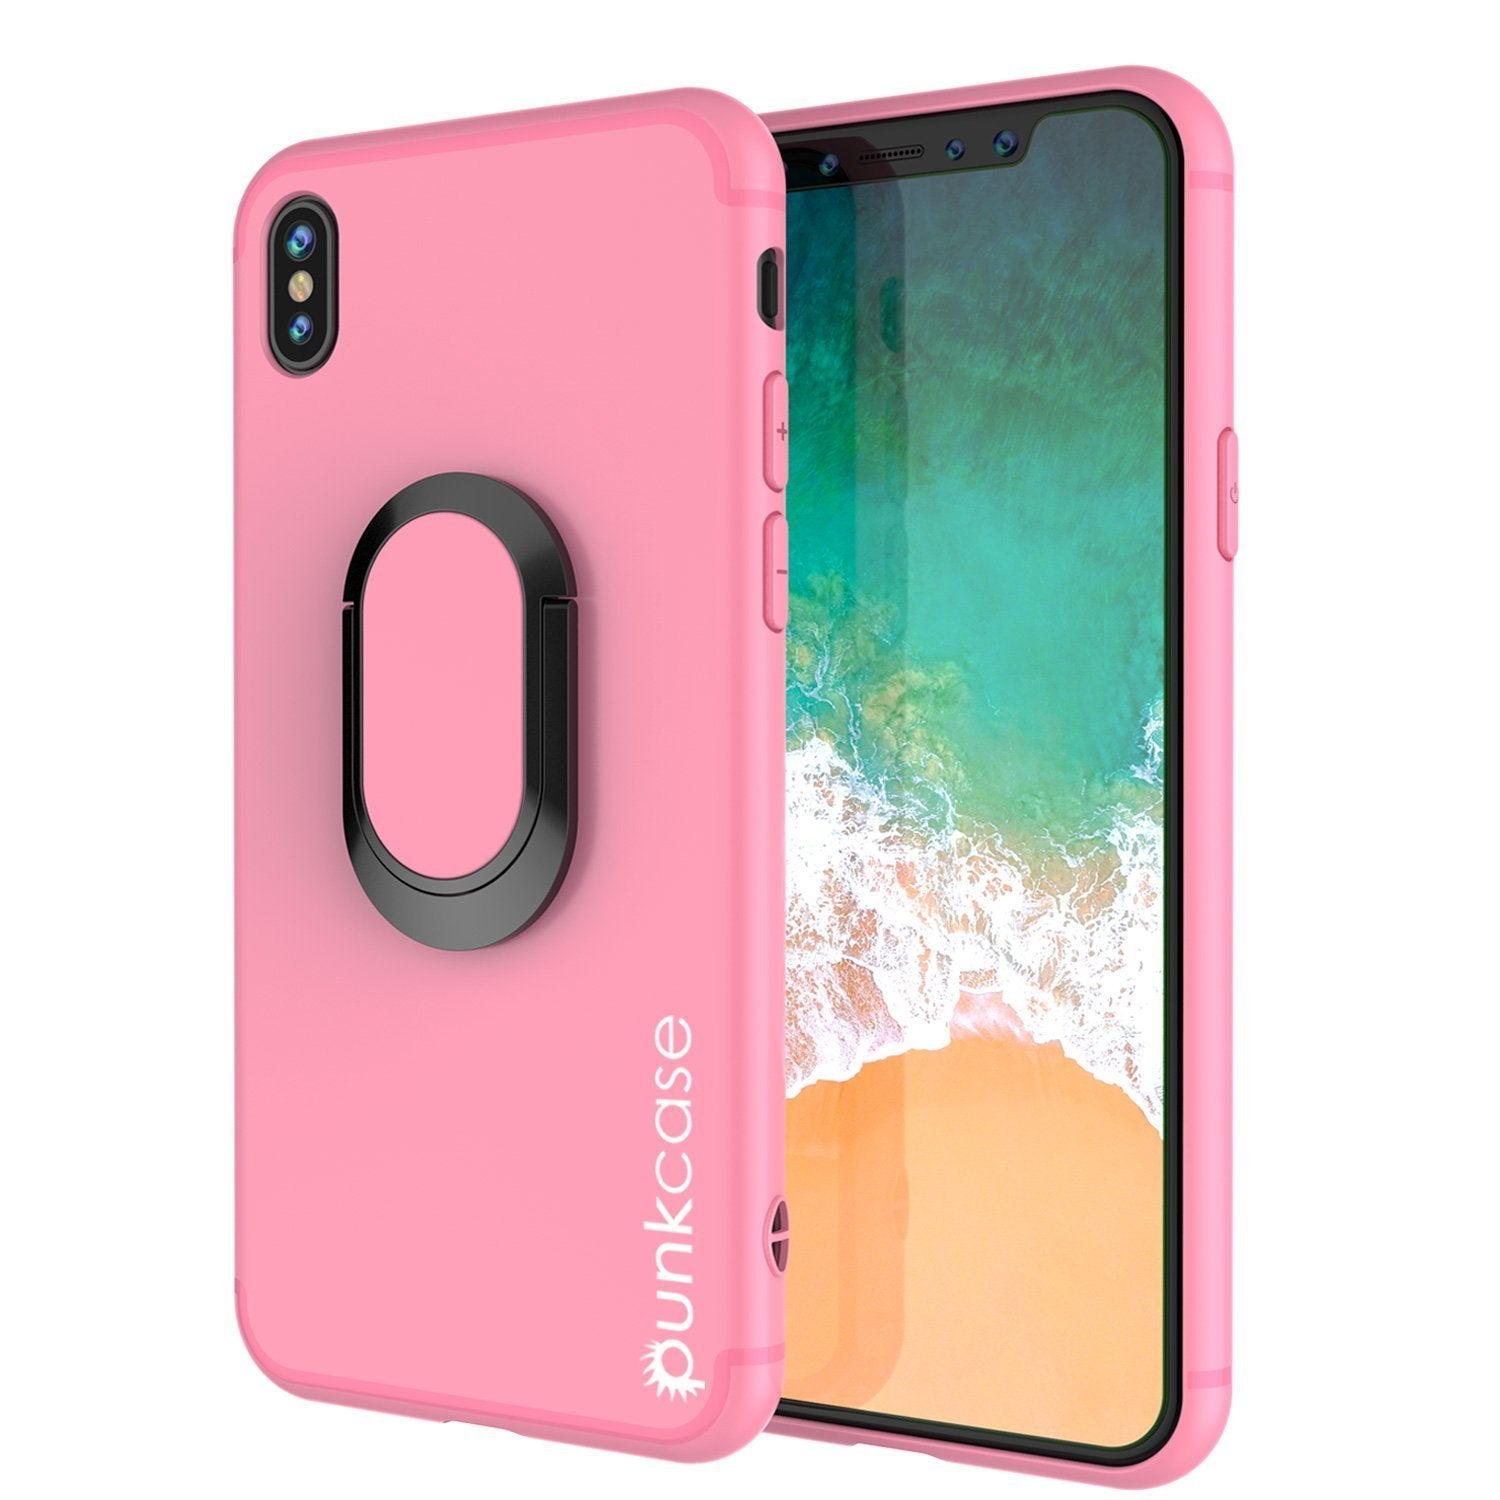 iPhone X Case, Punkcase Magnetix Protective TPU Cover W/ Kickstand, Tempered Glass Screen Protector [Pink]